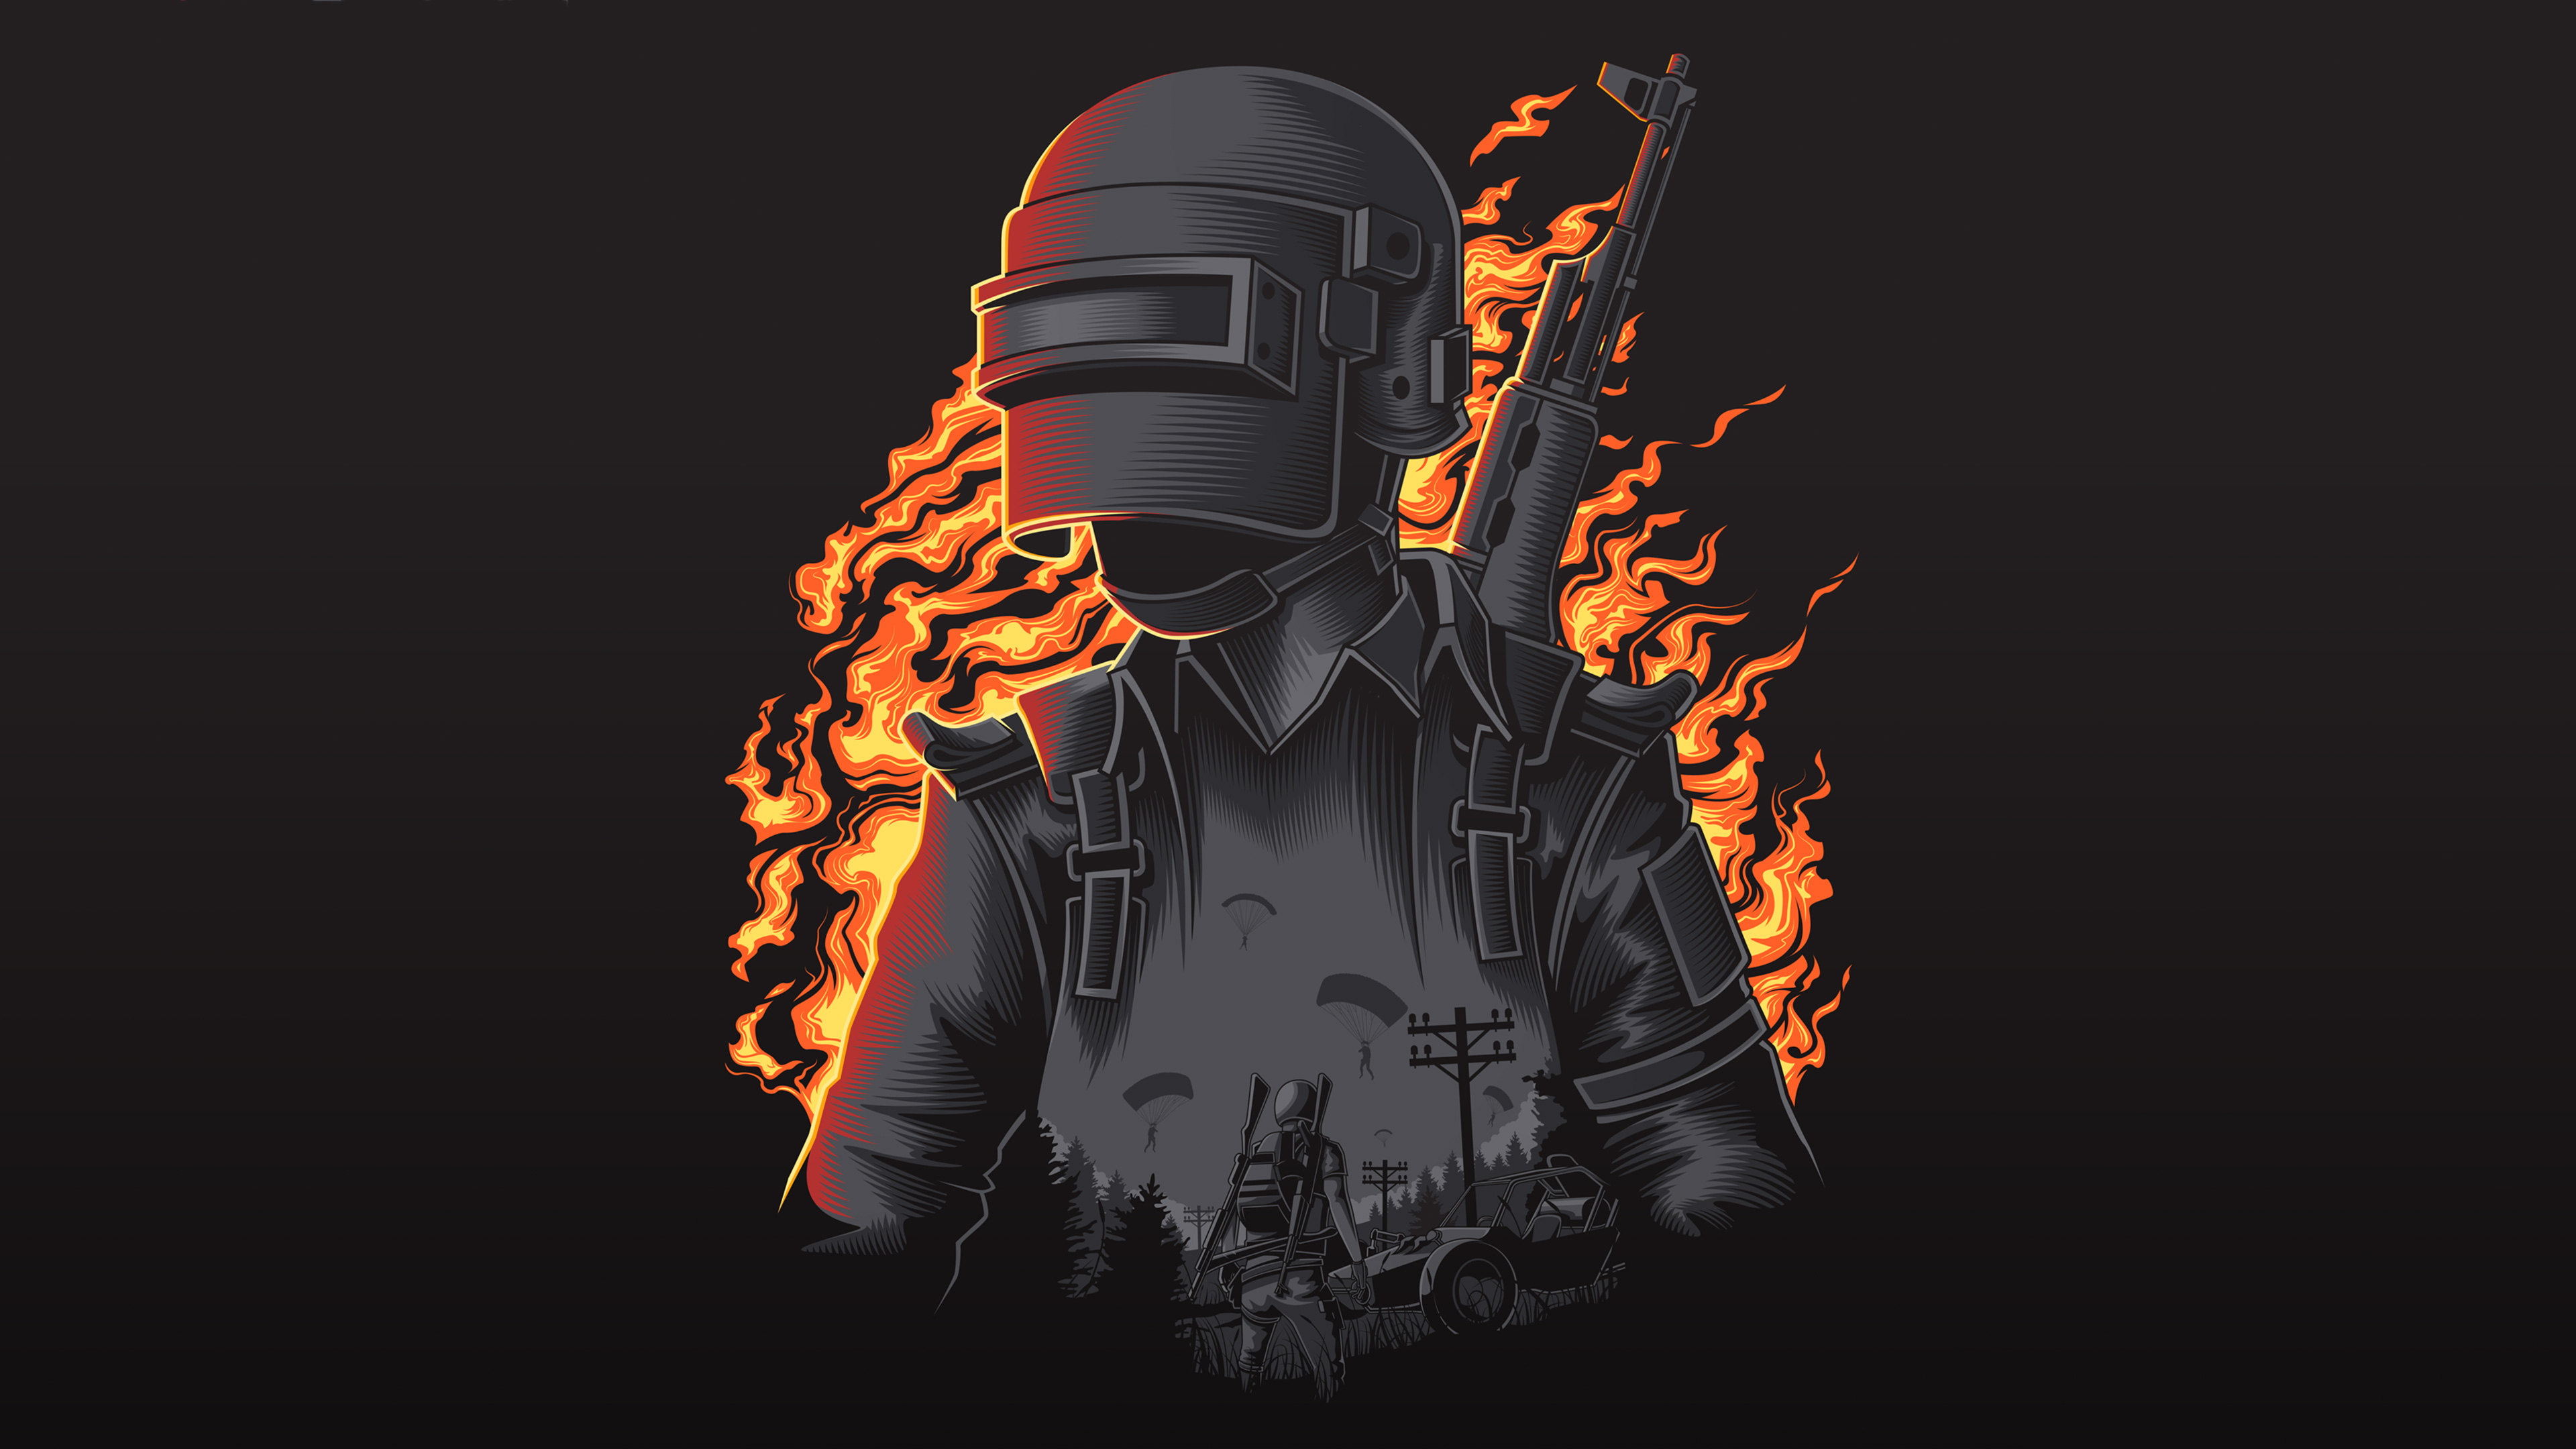 Pubg Wallpaper Hd Pic: Pubg Illustration 4k, HD Games, 4k Wallpapers, Images